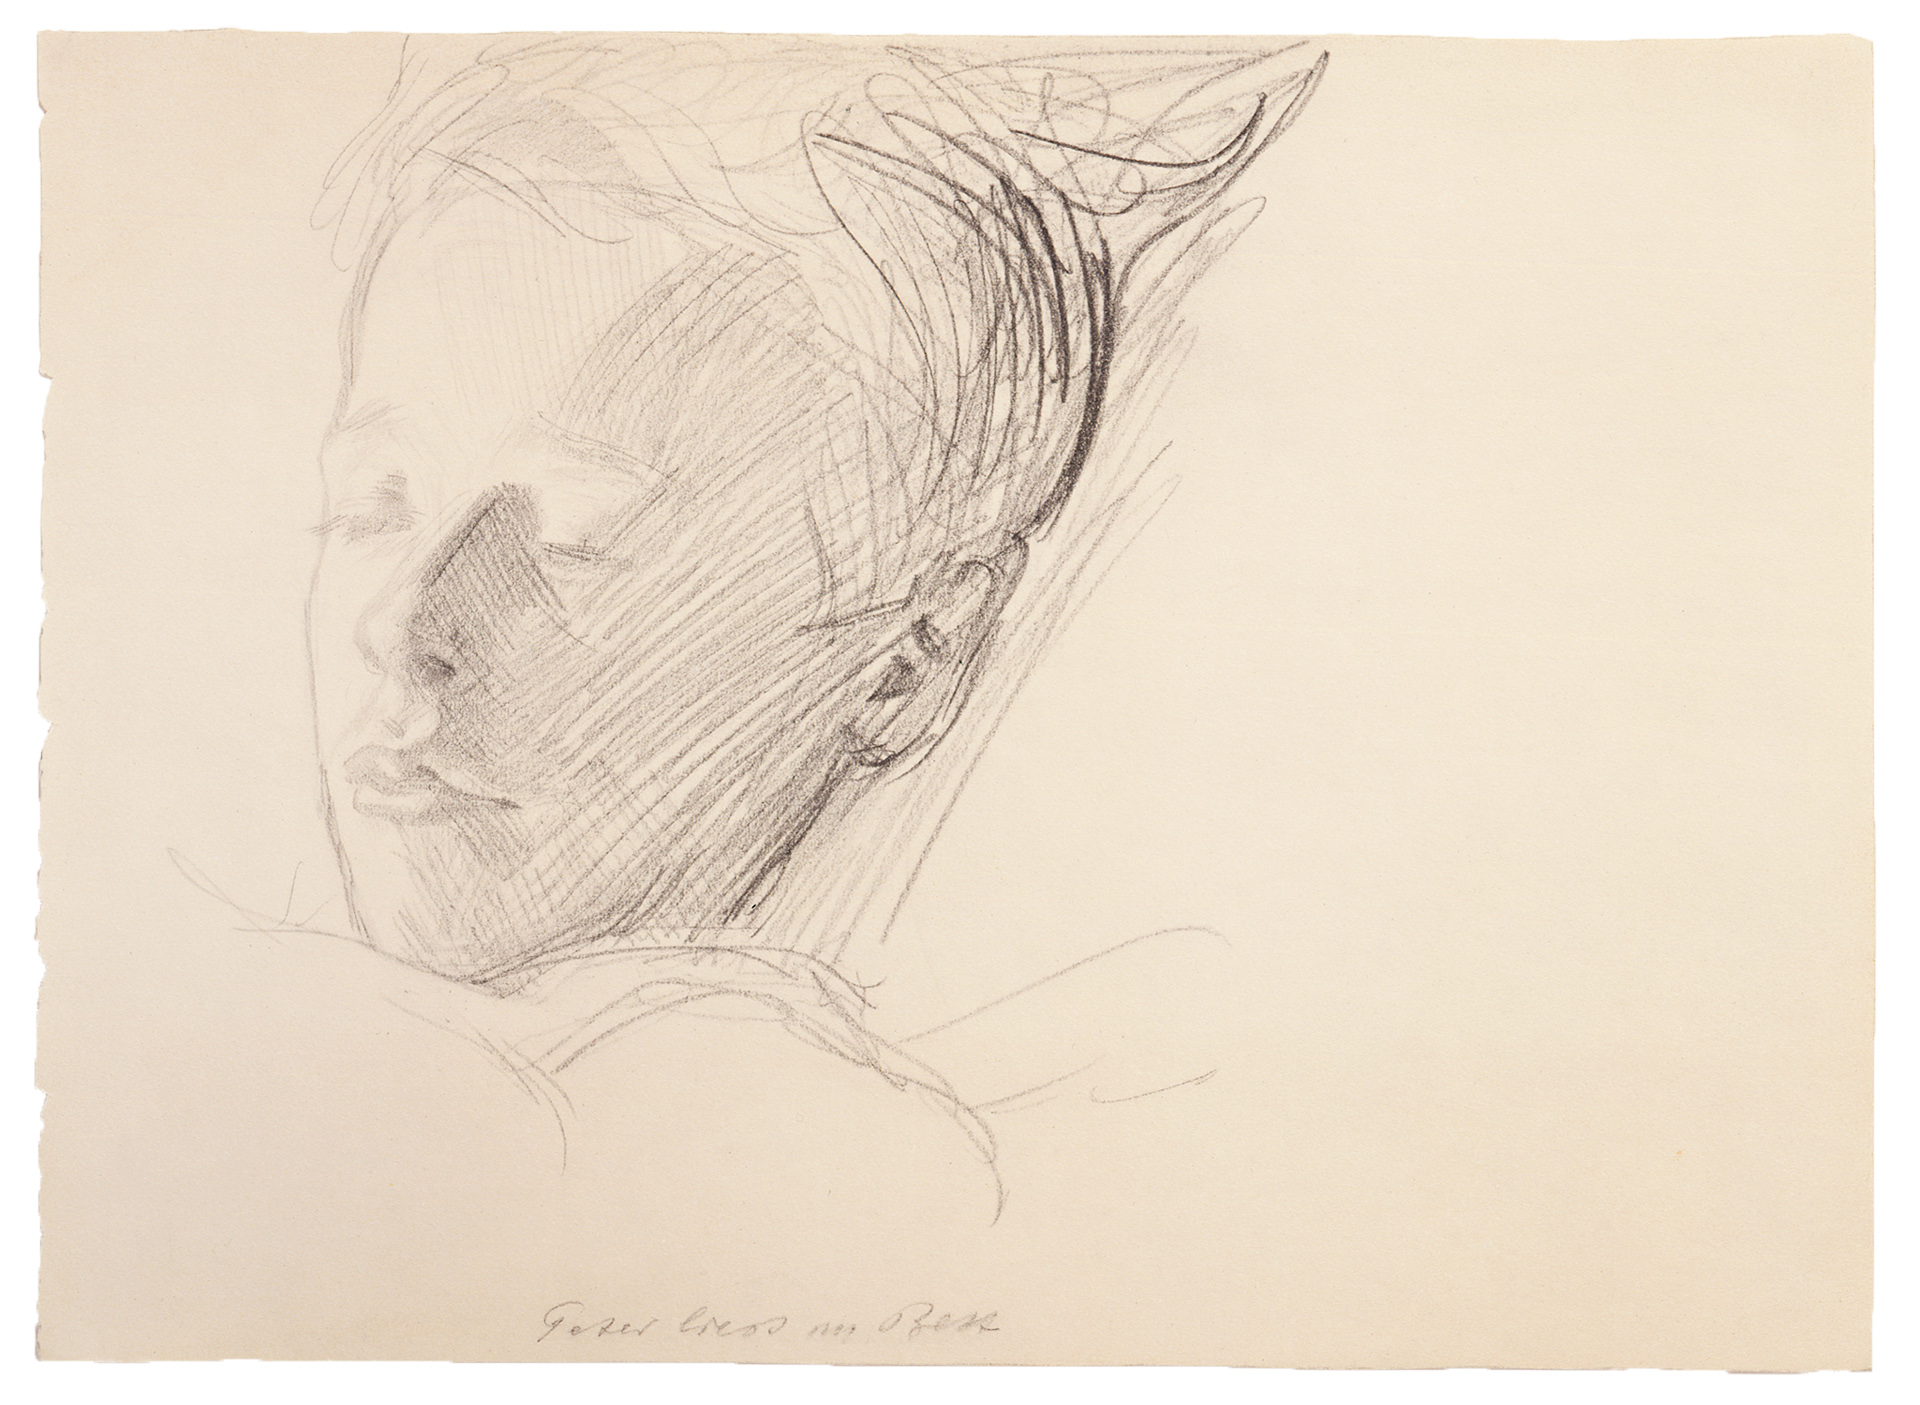 Käthe Kollwitz, Peter in his Bed, reading, c 1908, pencil on drawing paper, NT 444, Cologne Kollwitz Collection © Käthe Kollwitz Museum Köln